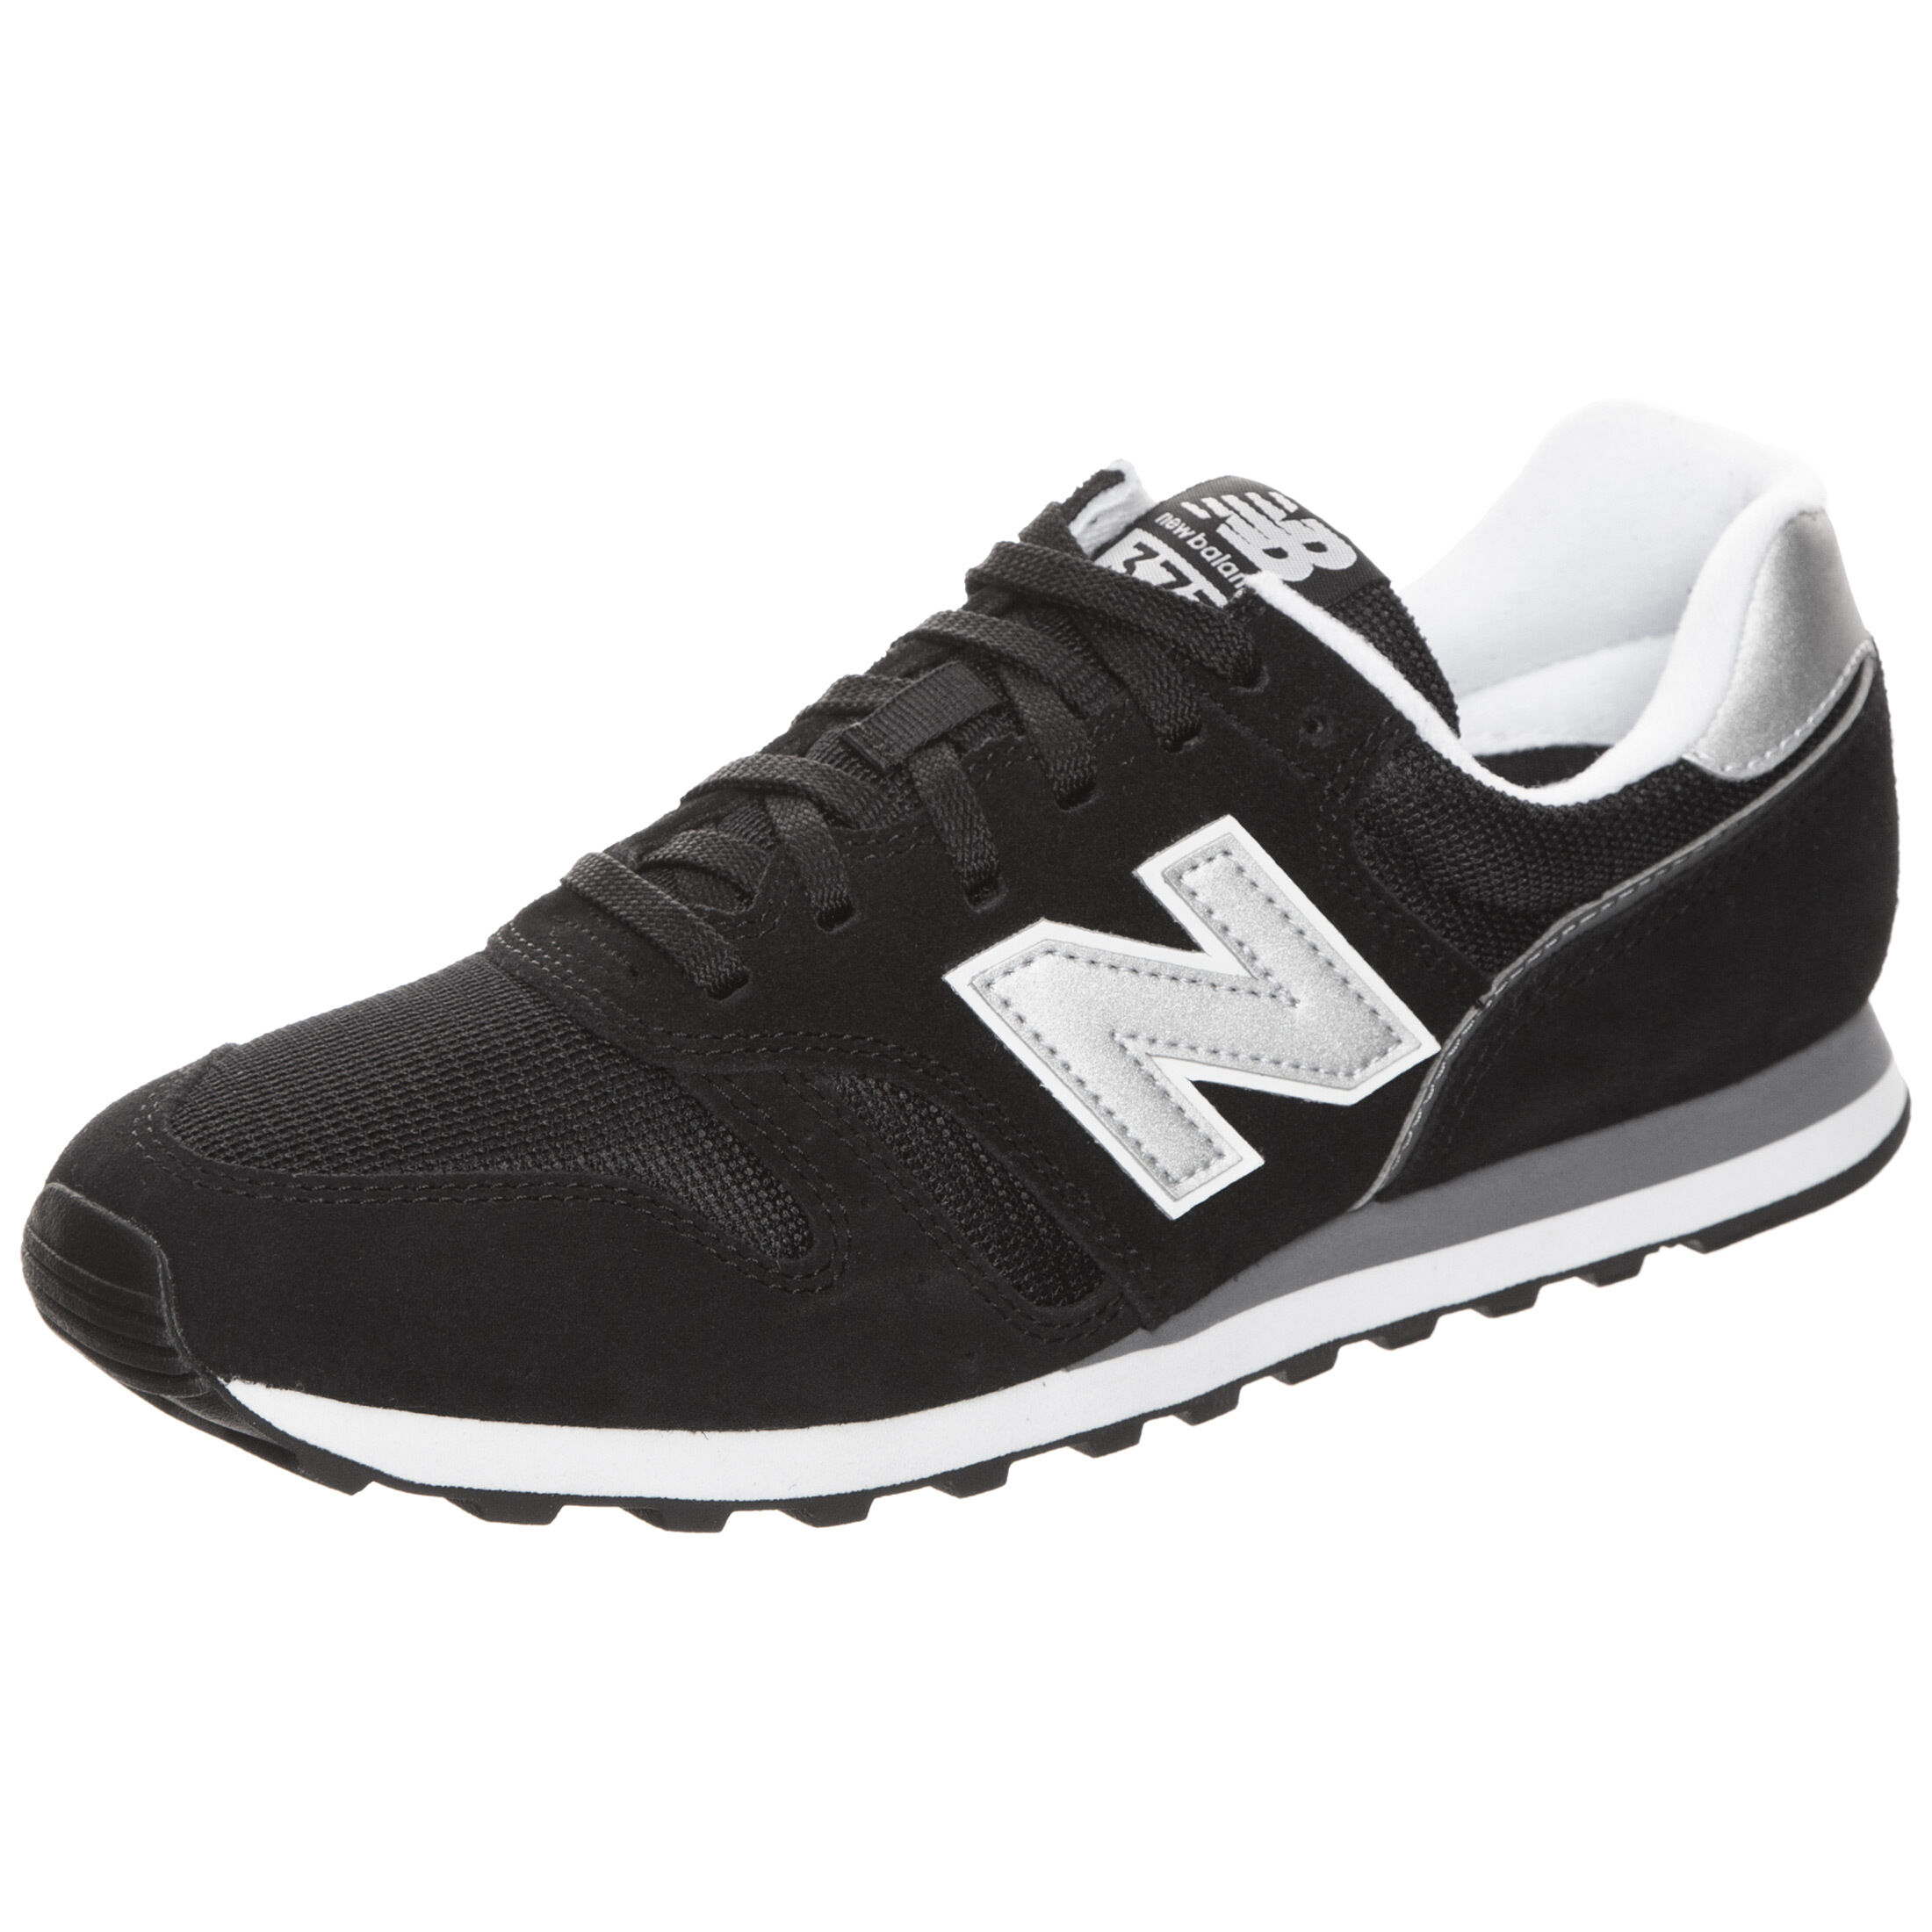 New Balance 373 | Sneaker Shop Lifestyle bei OUTFITTER